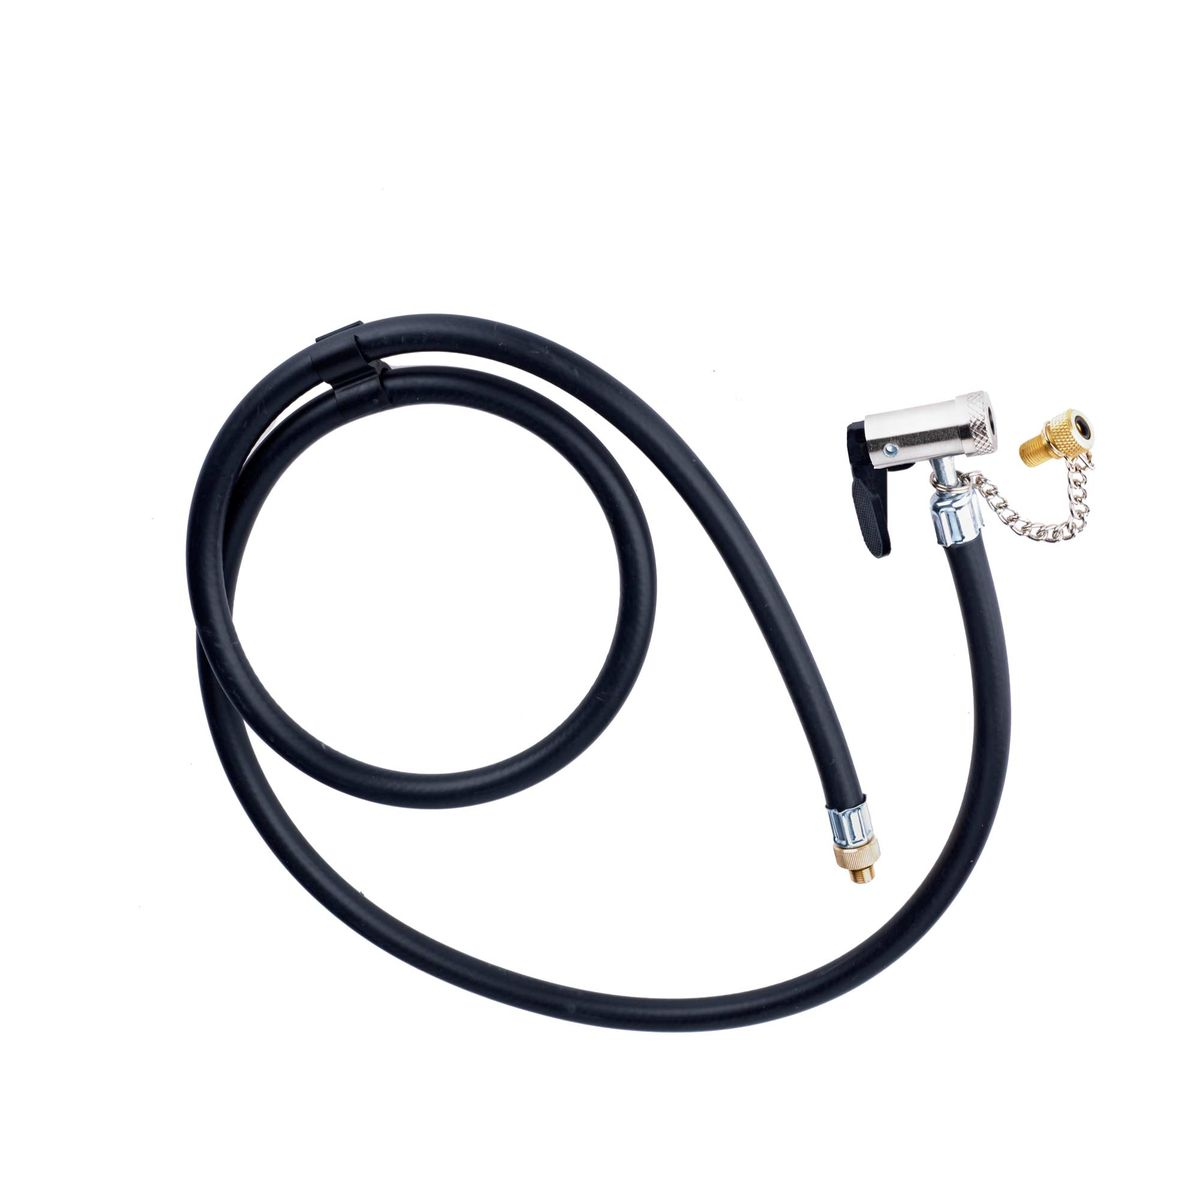 SKS pump head with thumb lock connector and hose for Rennkompressor/Airmenius pump